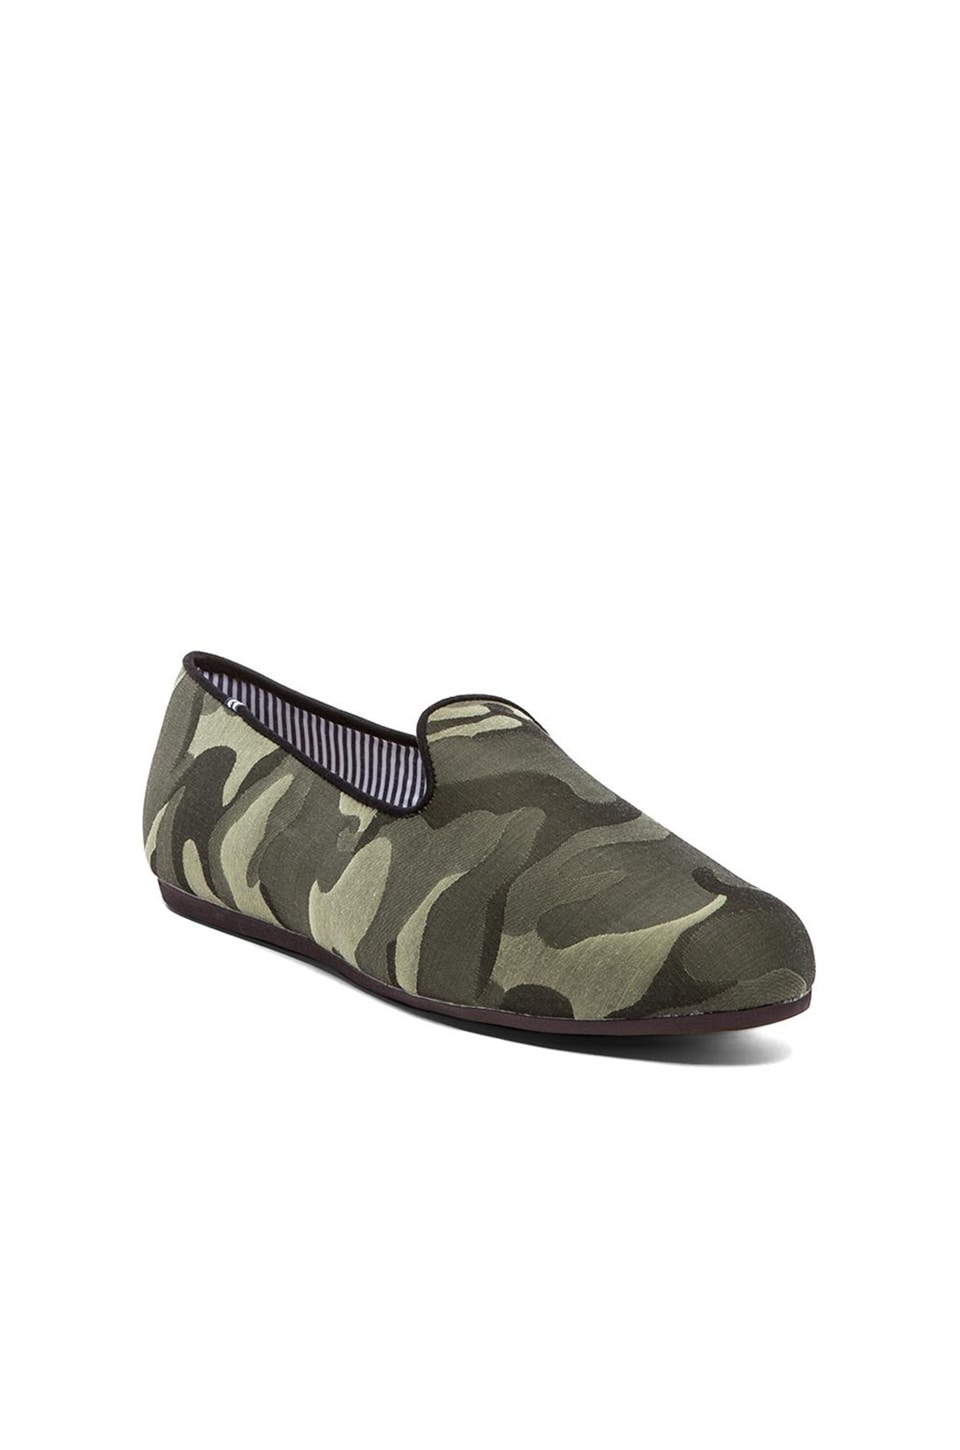 Charles Philip Shanghai Constantino Loafer in Camo